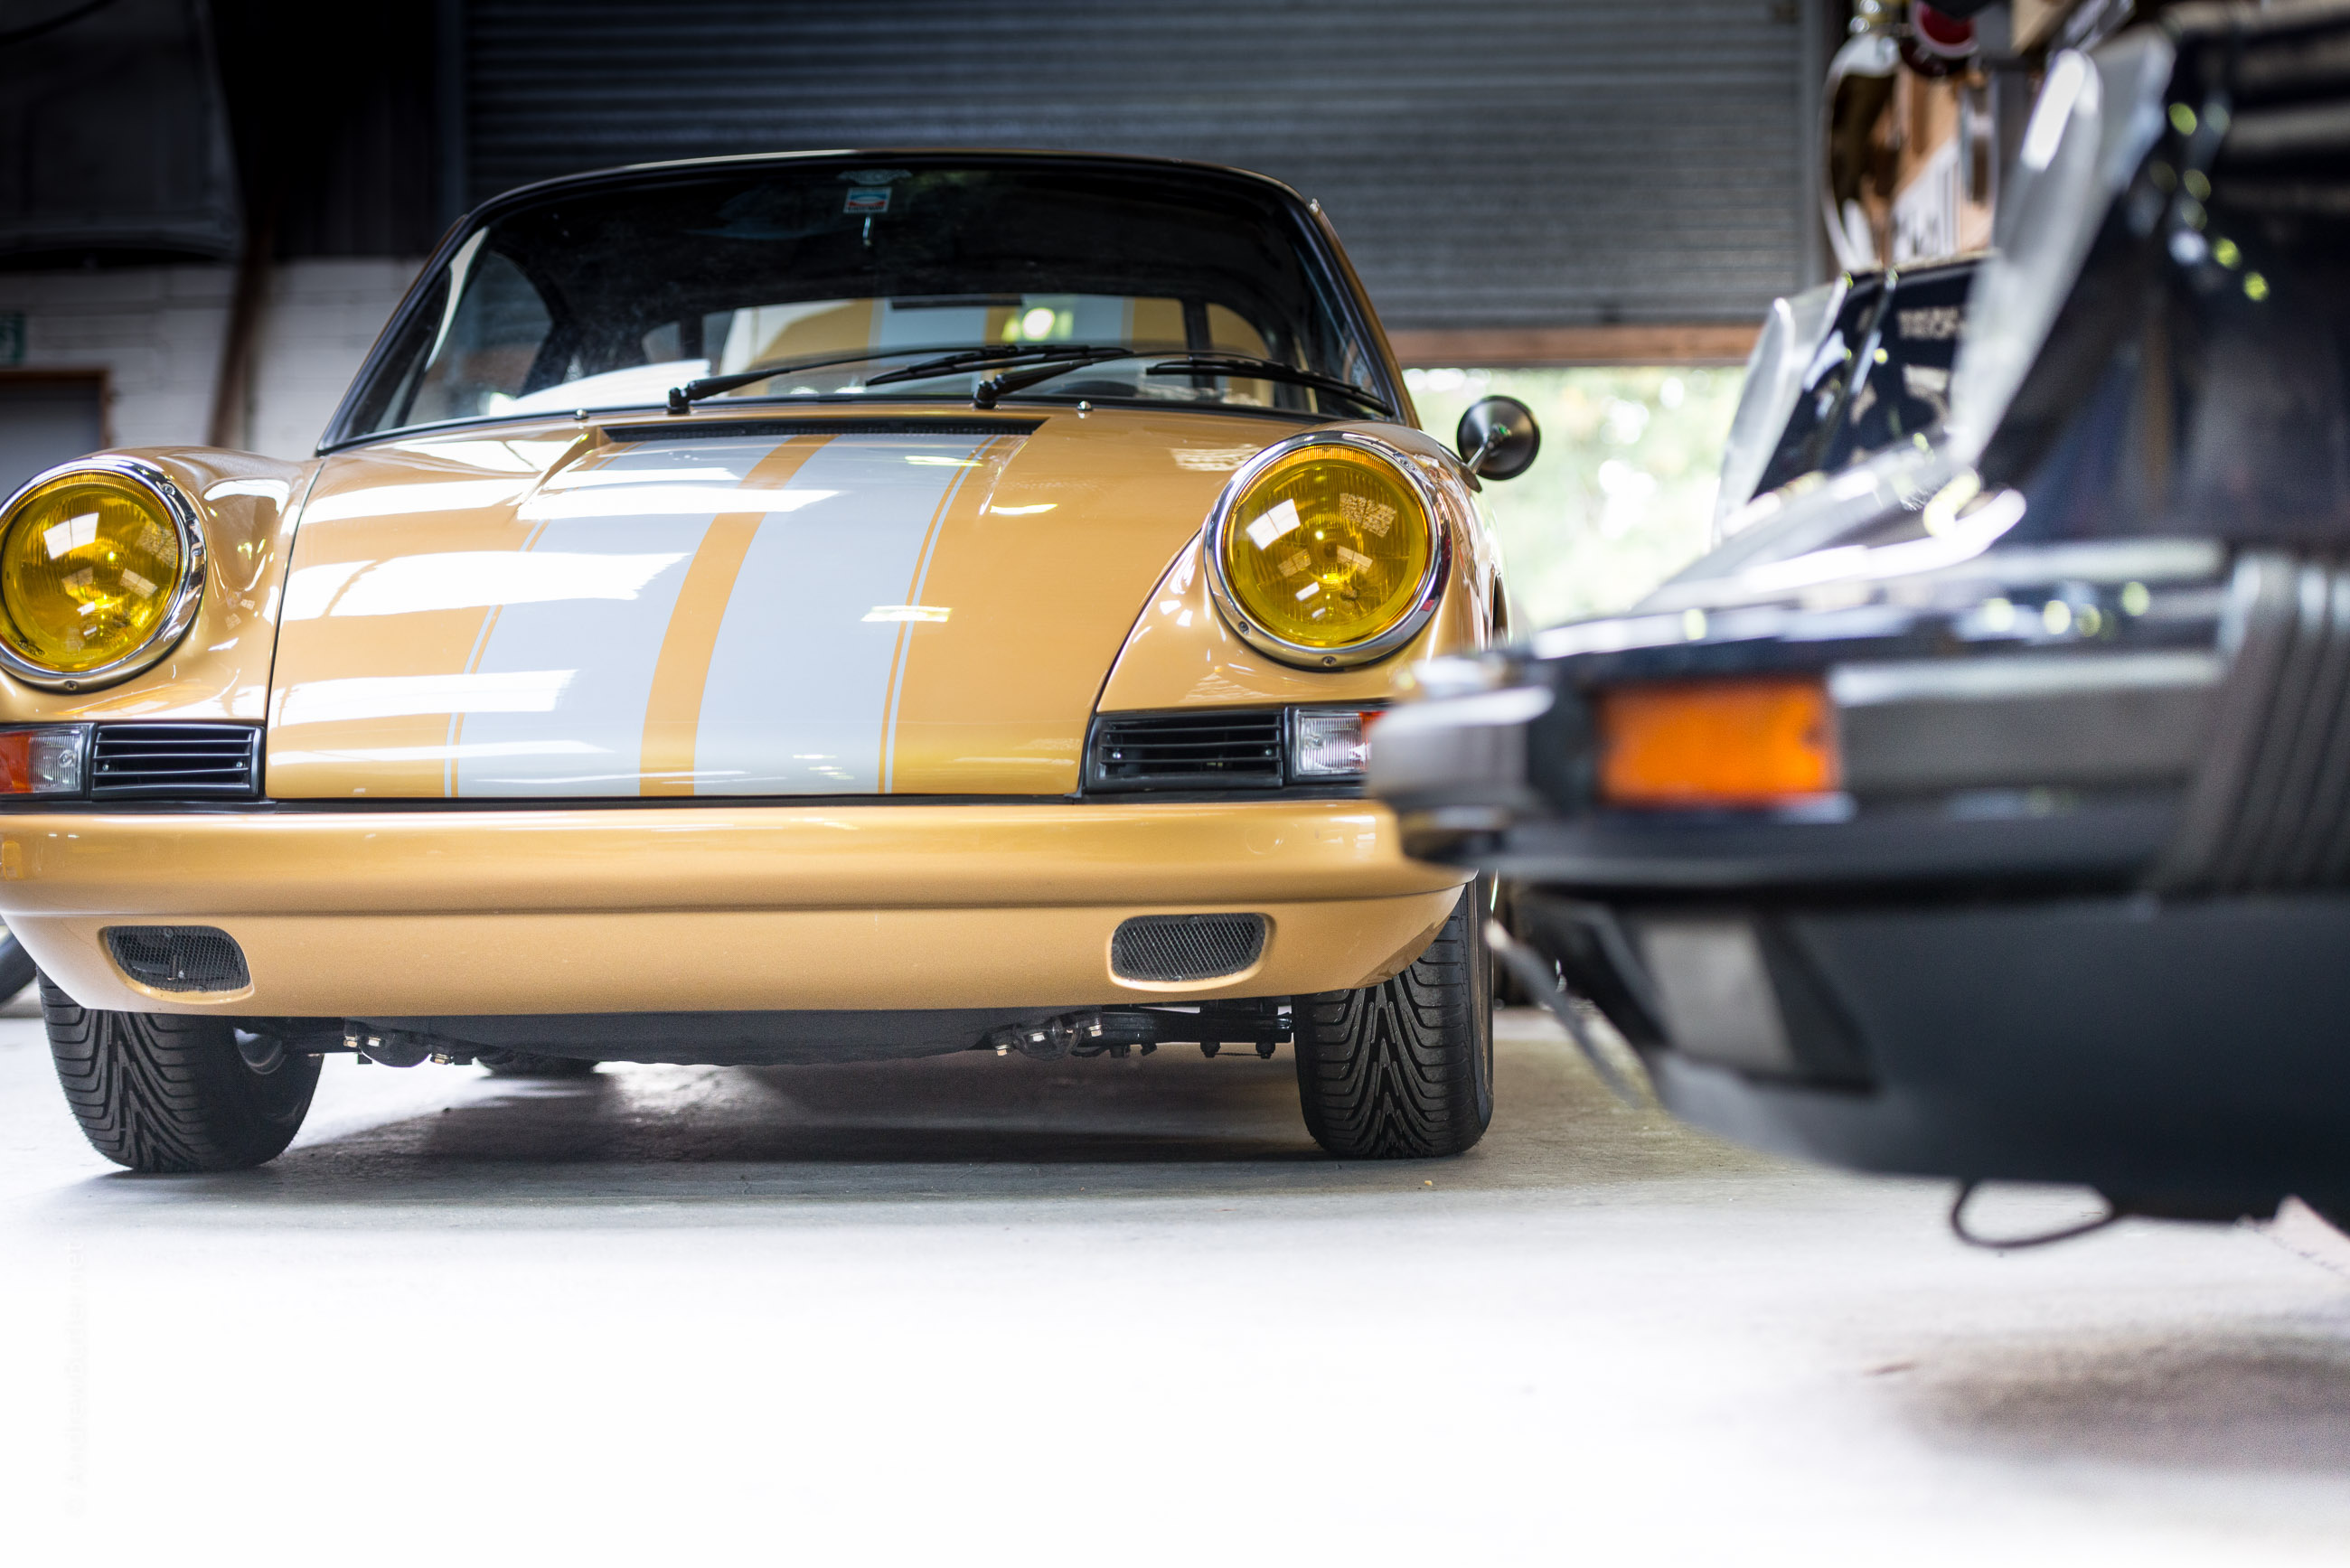 R To RSR Porsche photographed by Andrew Butler